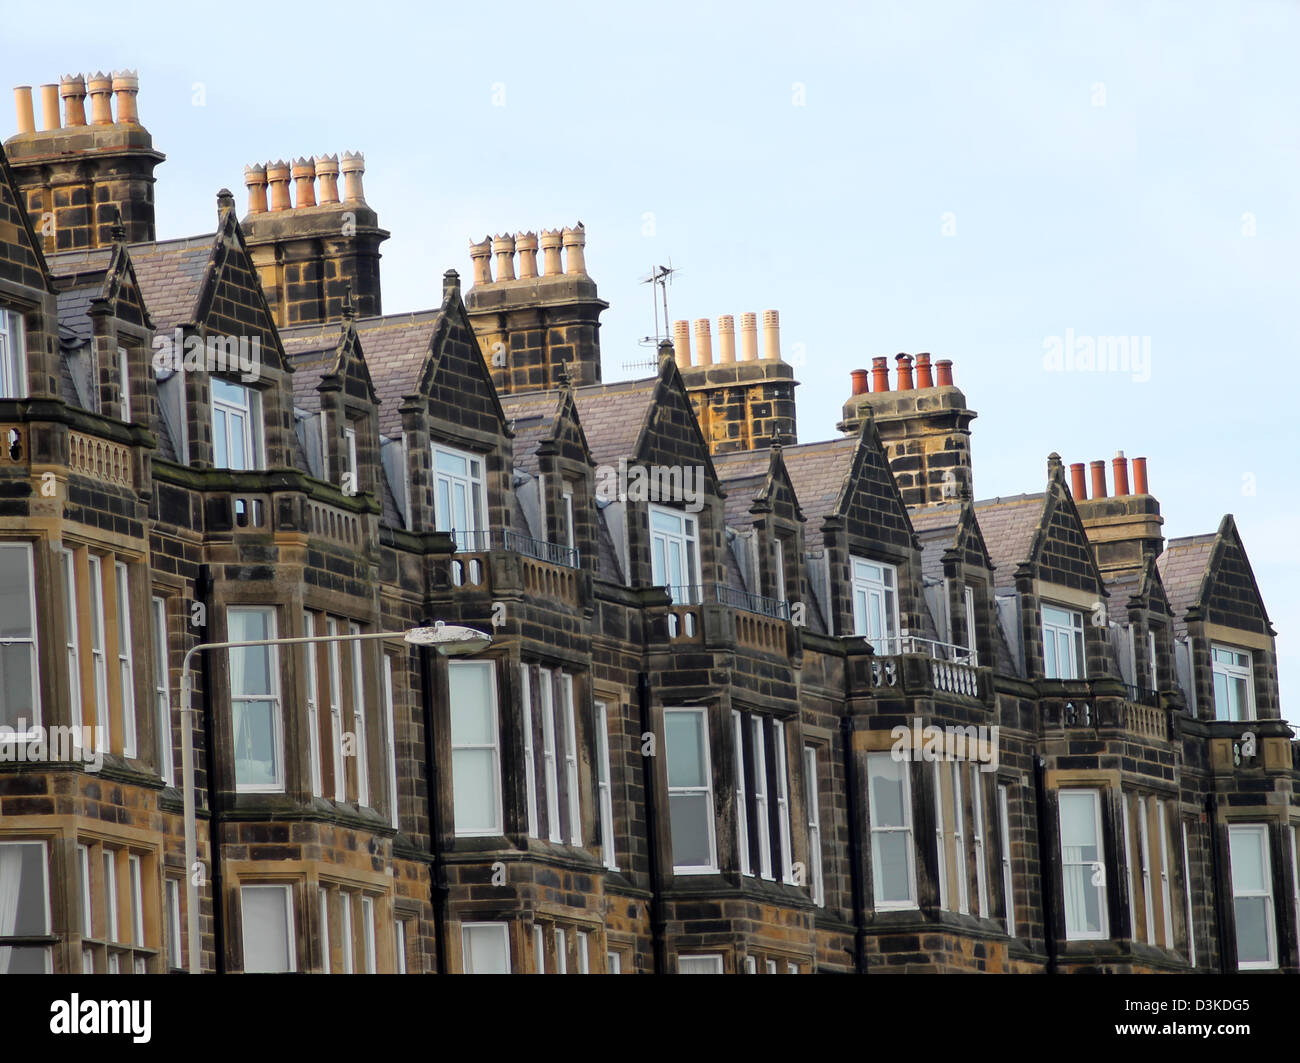 Row of old Victorian town houses on street in Scarborough, England. - Stock Image